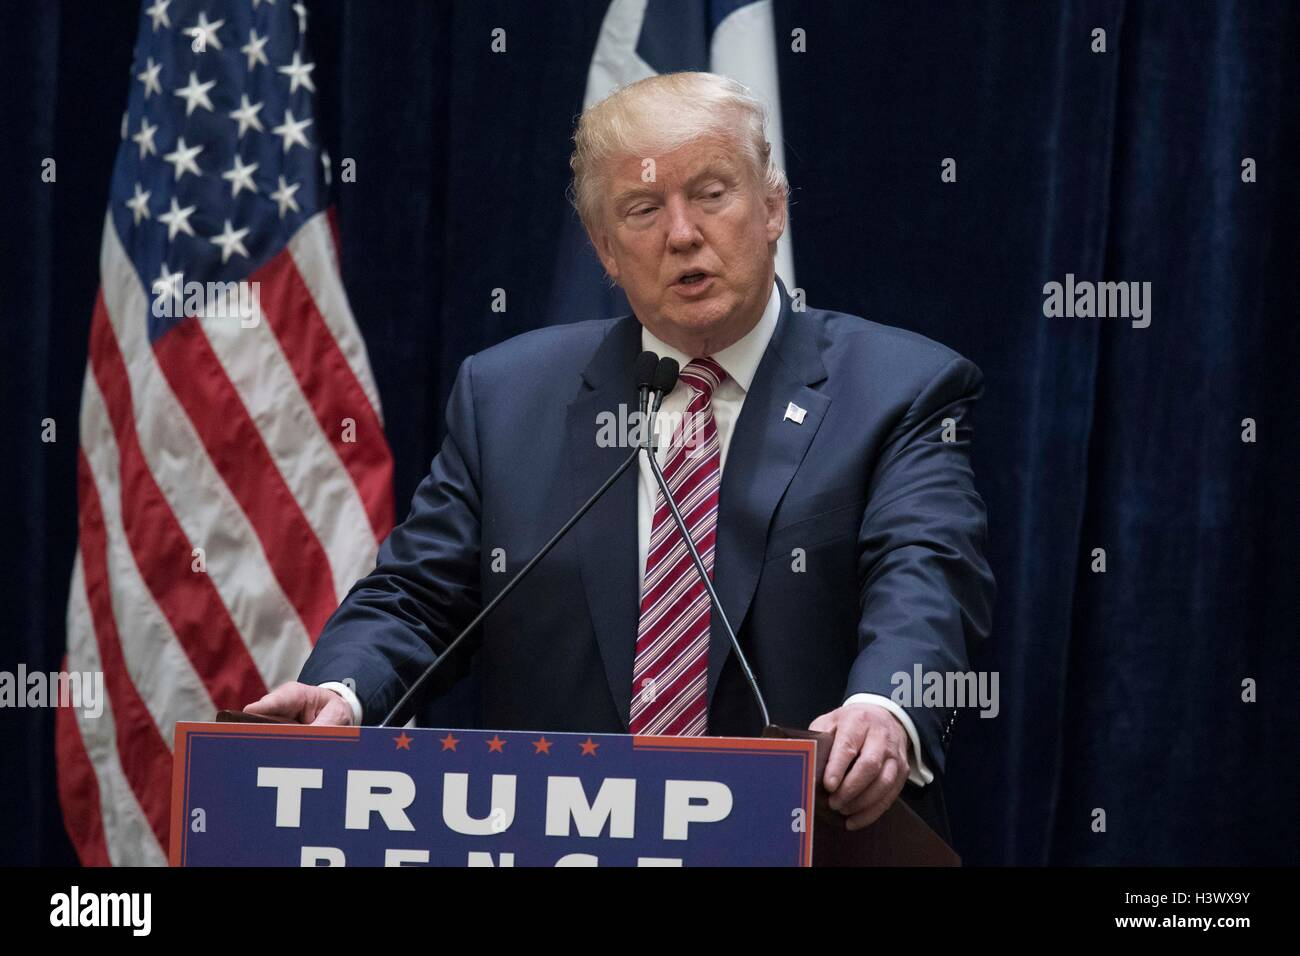 US Republican presidential candidate Donald Trump speaks at fund-raising luncheon in San Antonio, Texas - Stock Image